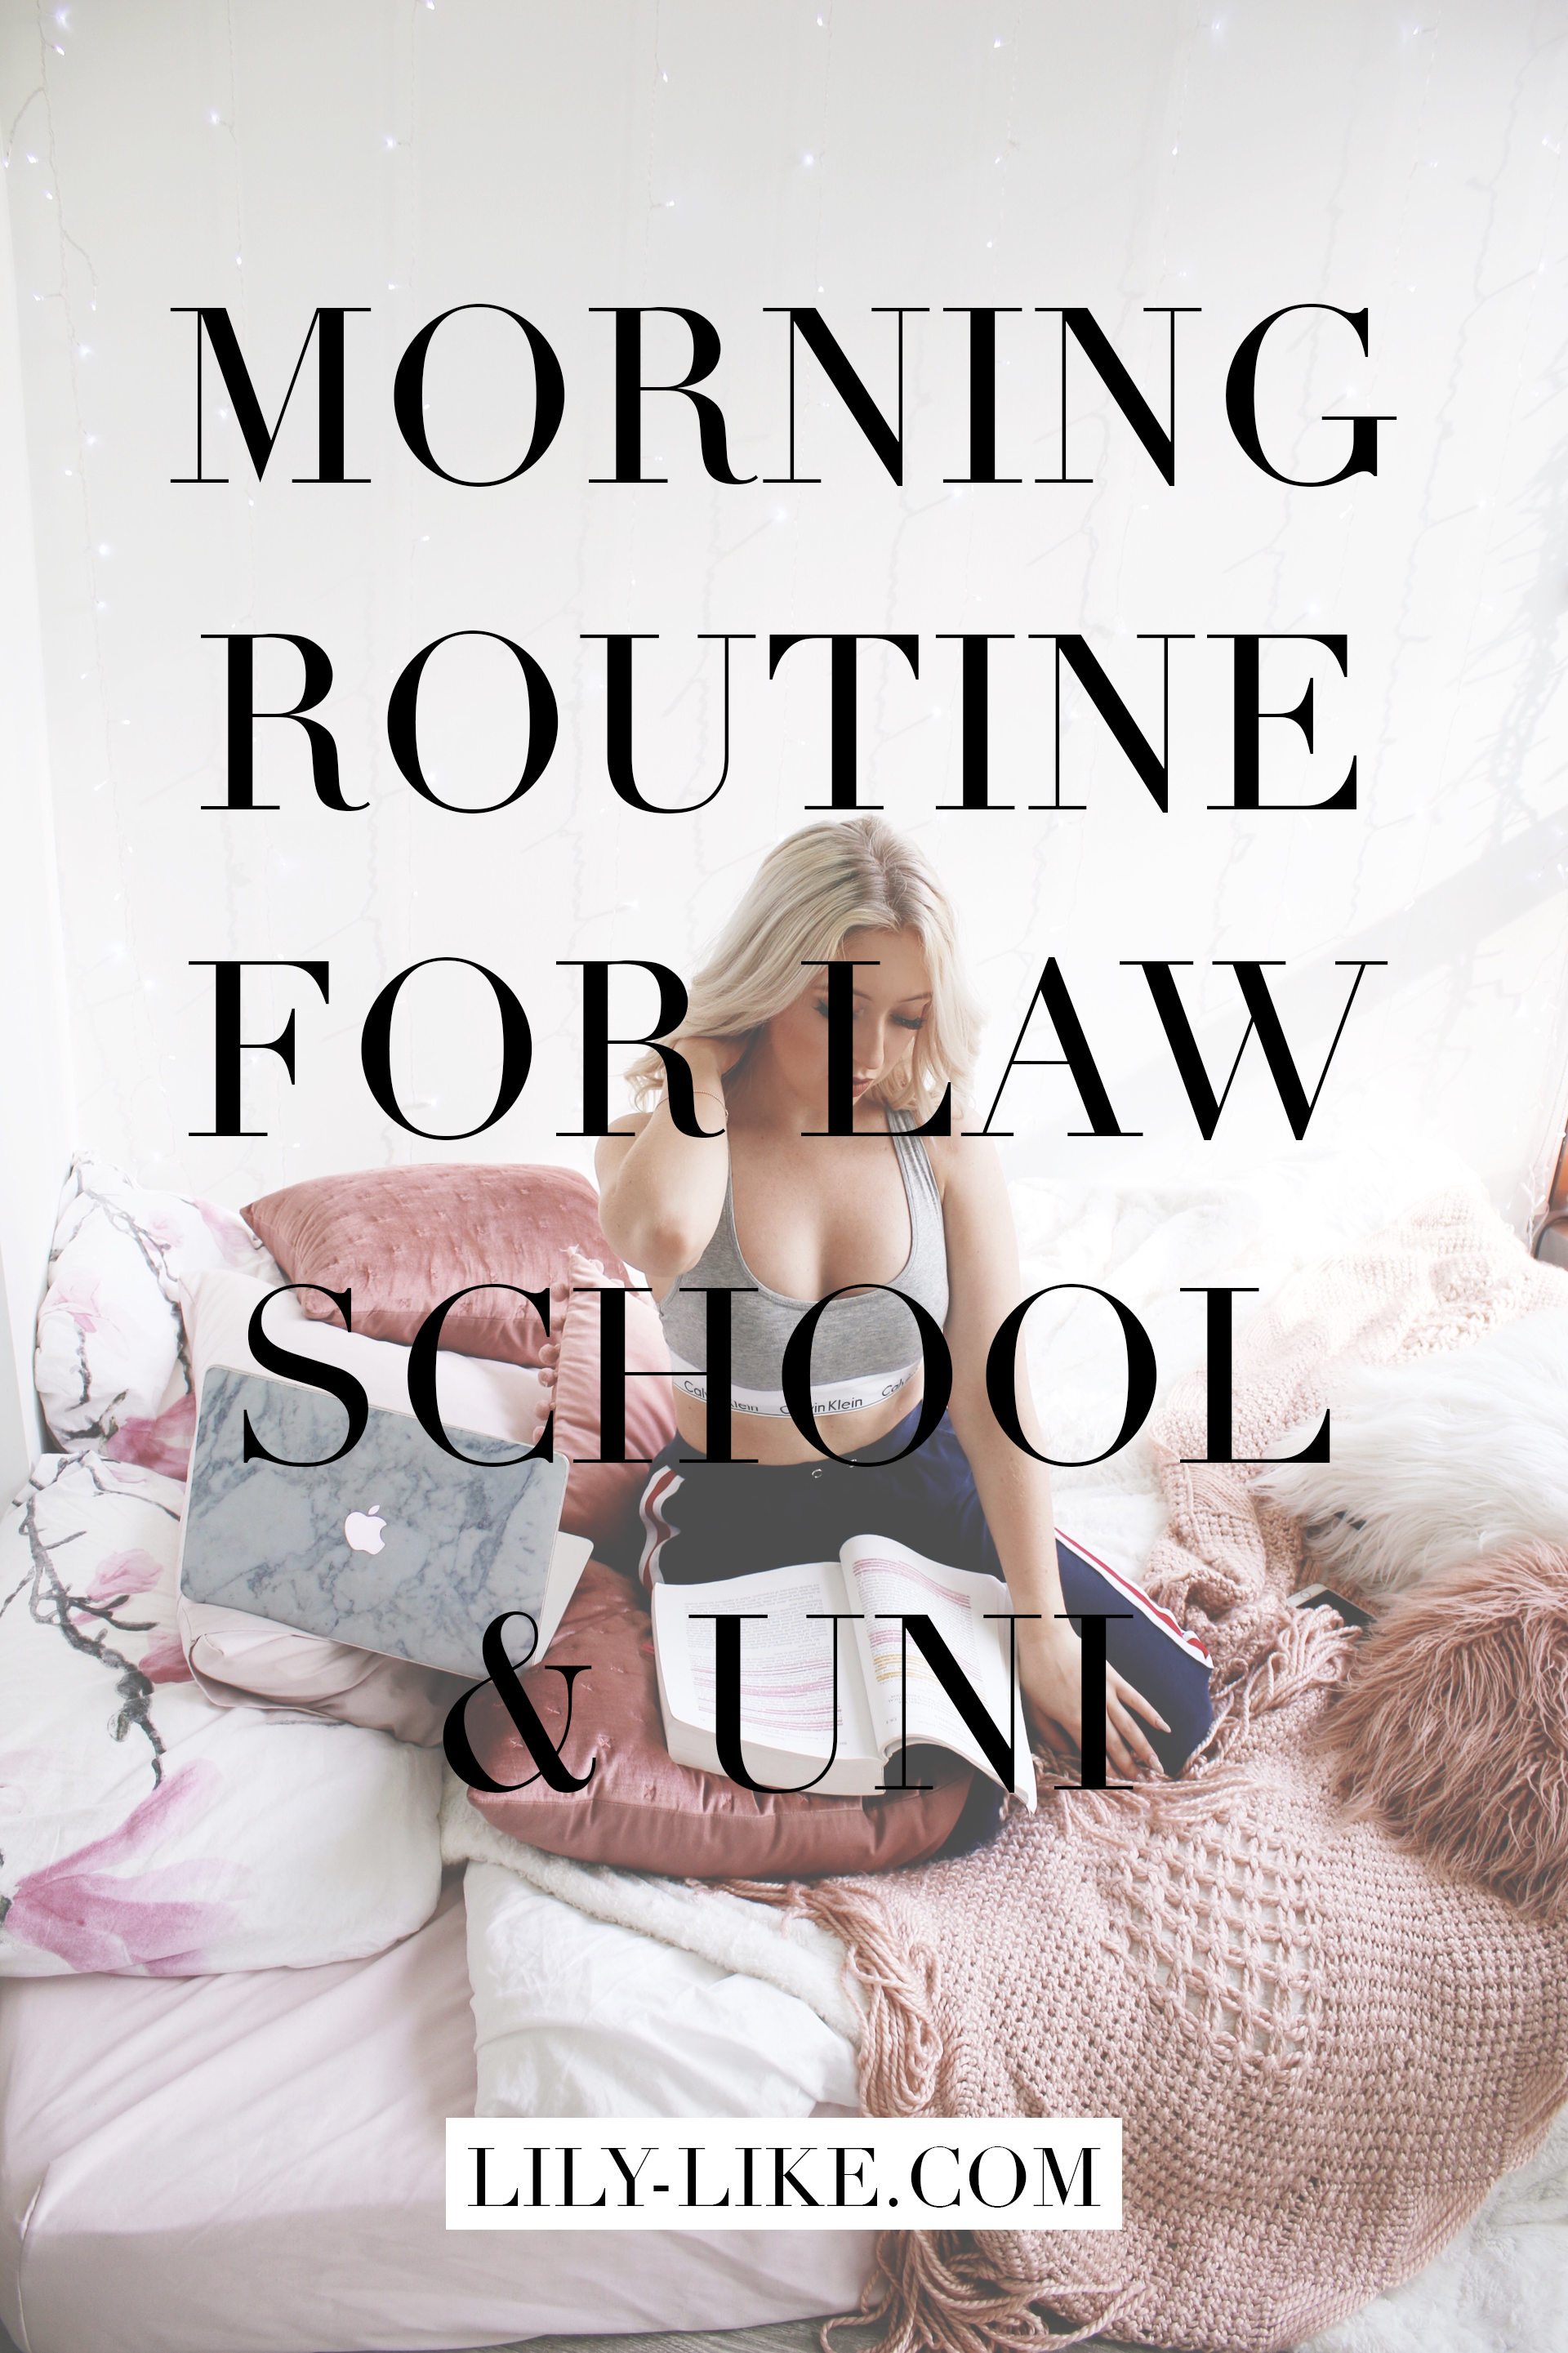 My Morning Routine For US Law School/University